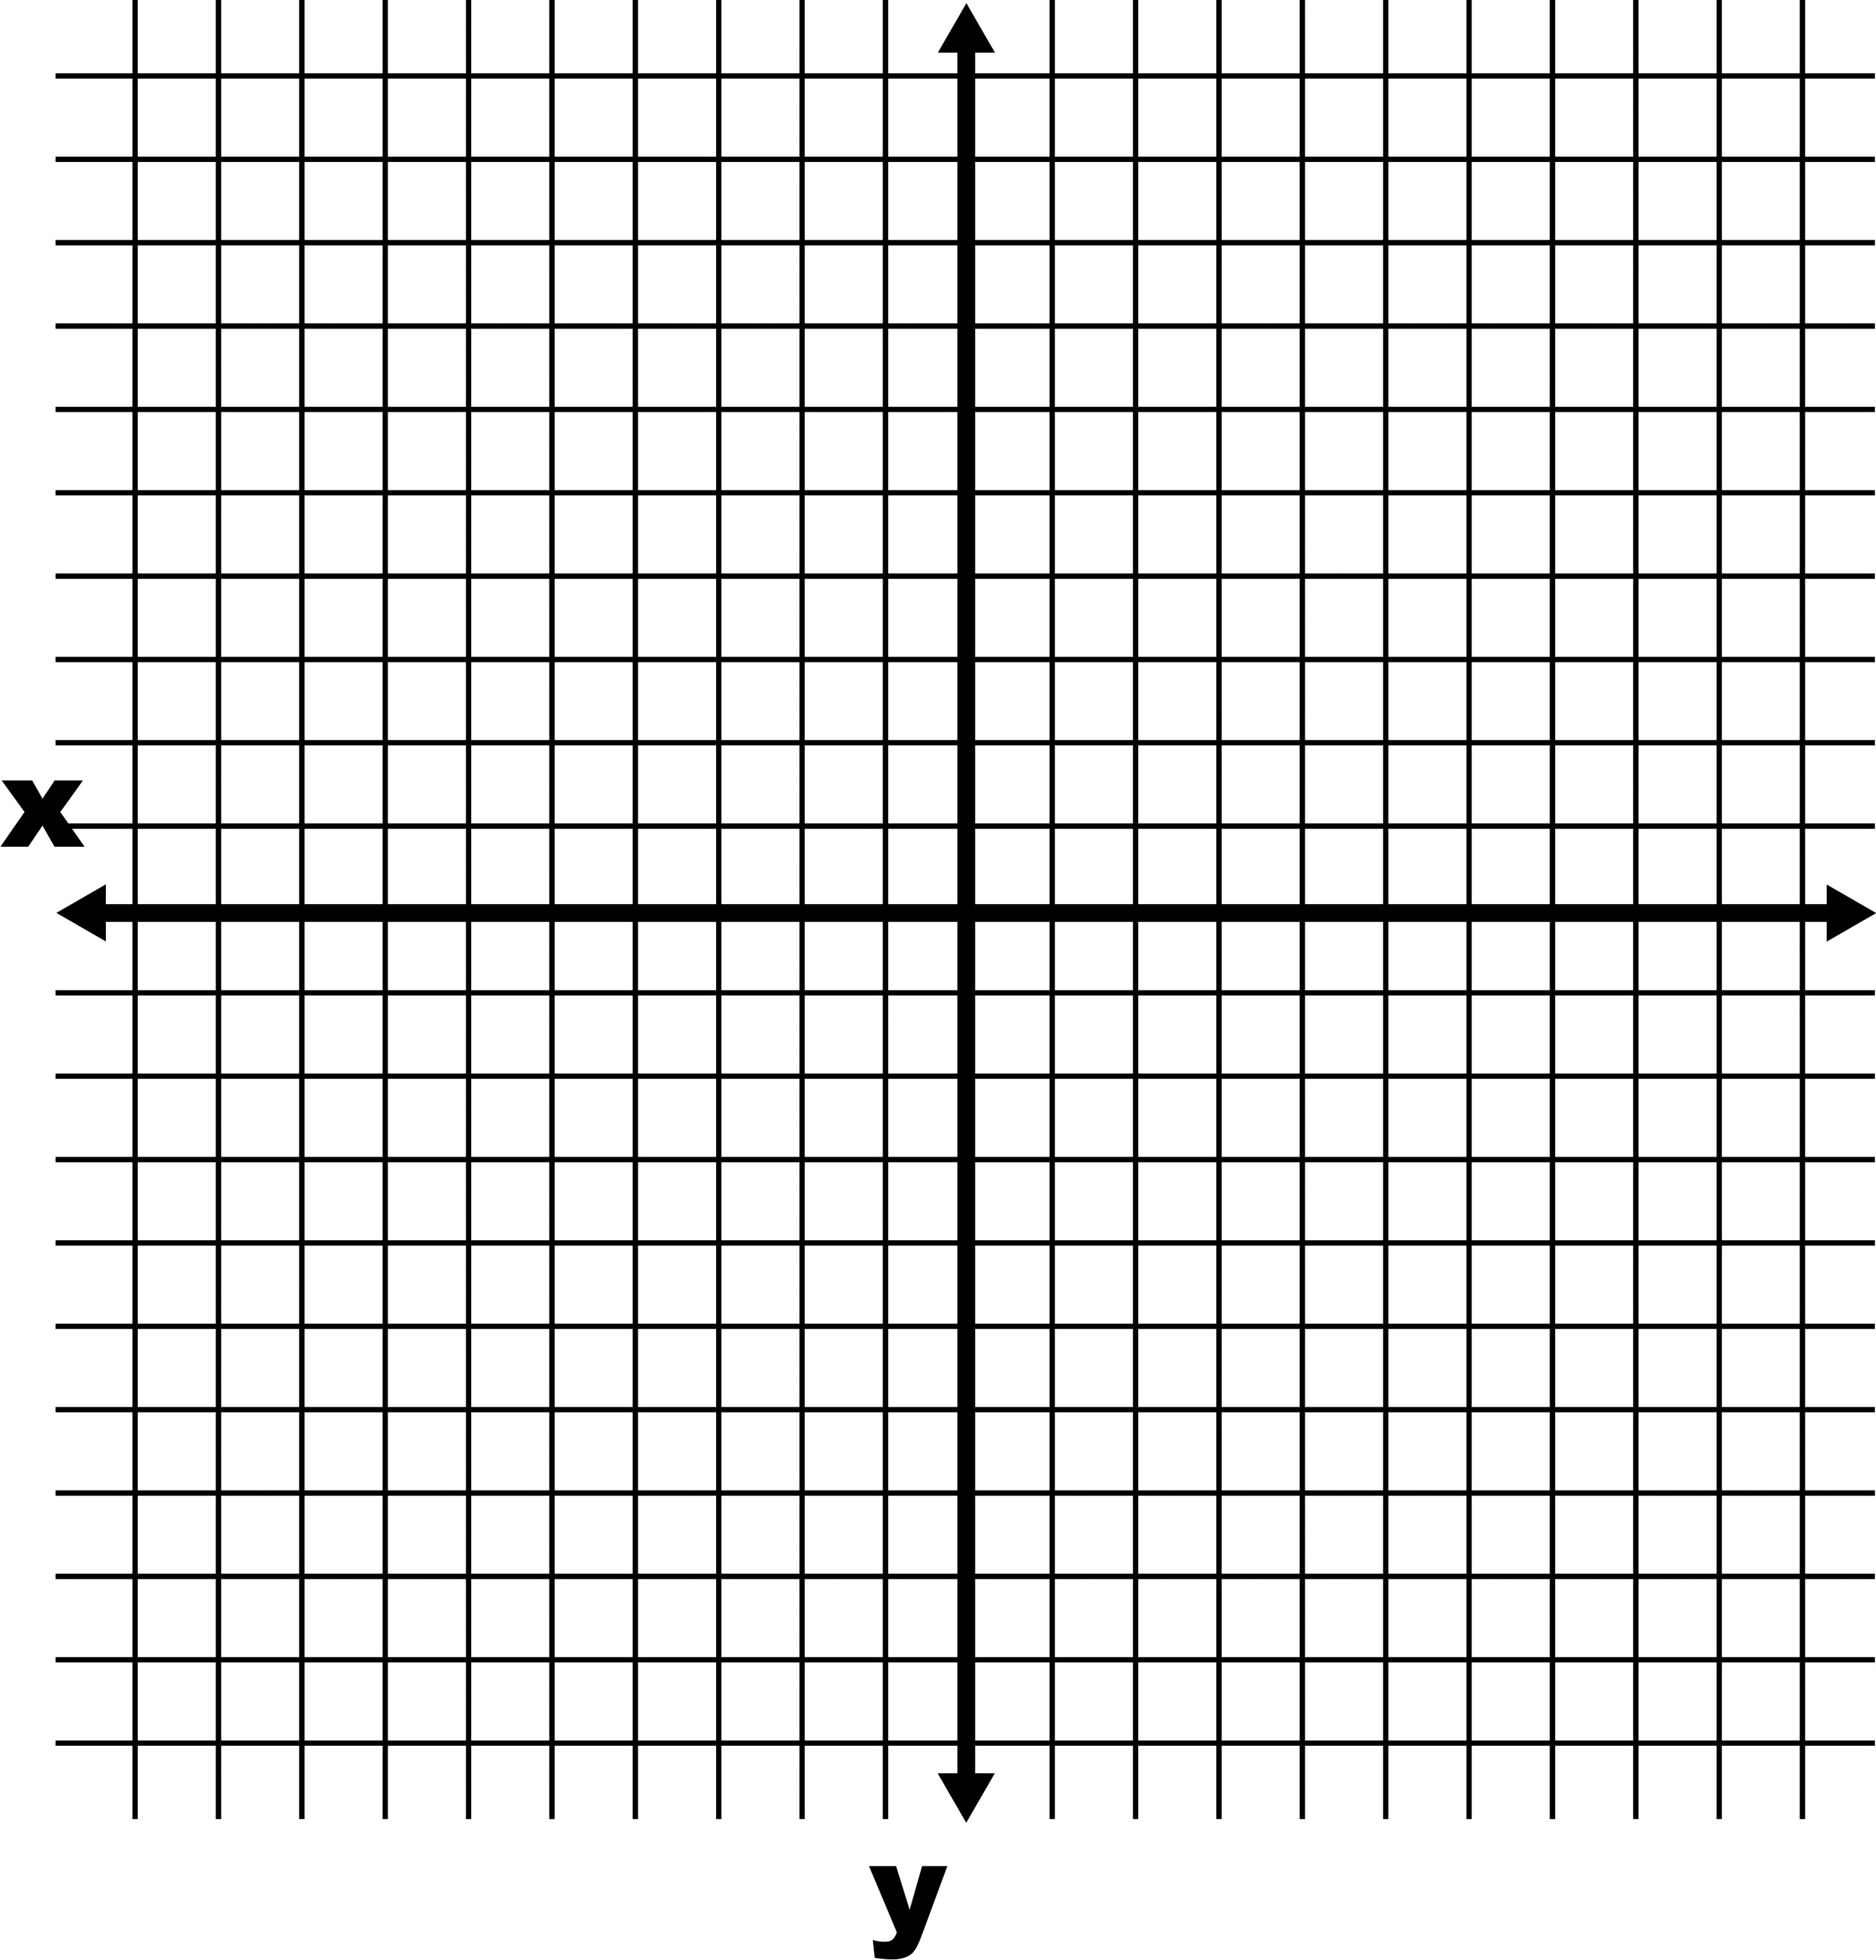 Coordinate Grid With Axes Labeled And Grid Lines Shown